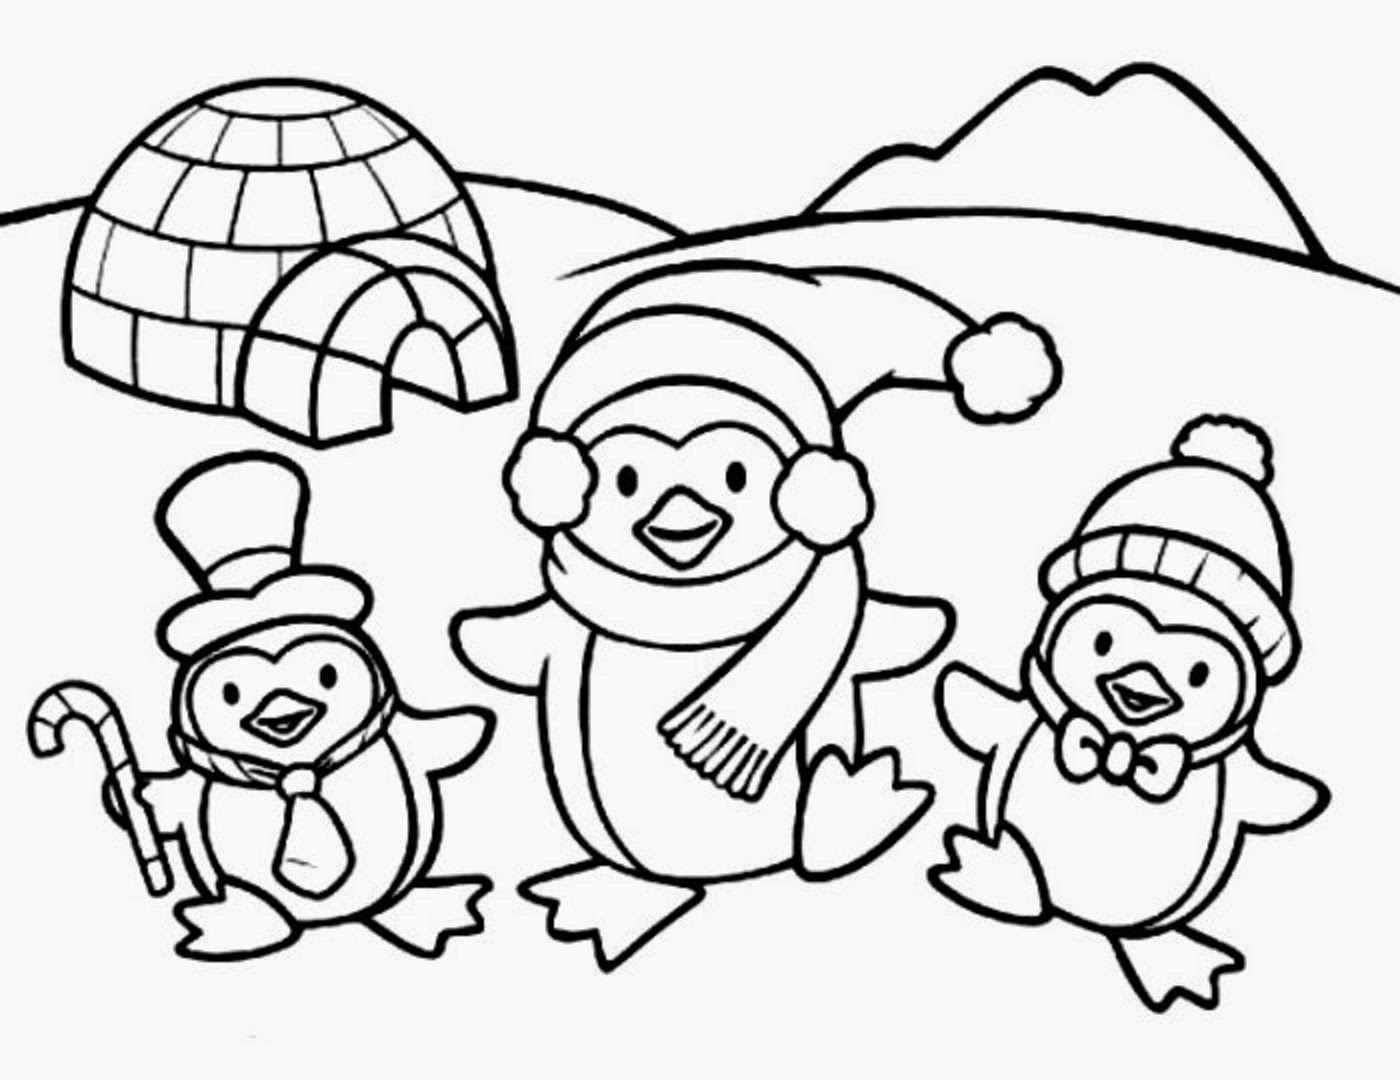 free printable baby animal coloring pages baby animal coloring pages getcoloringpagescom printable baby animal coloring free pages